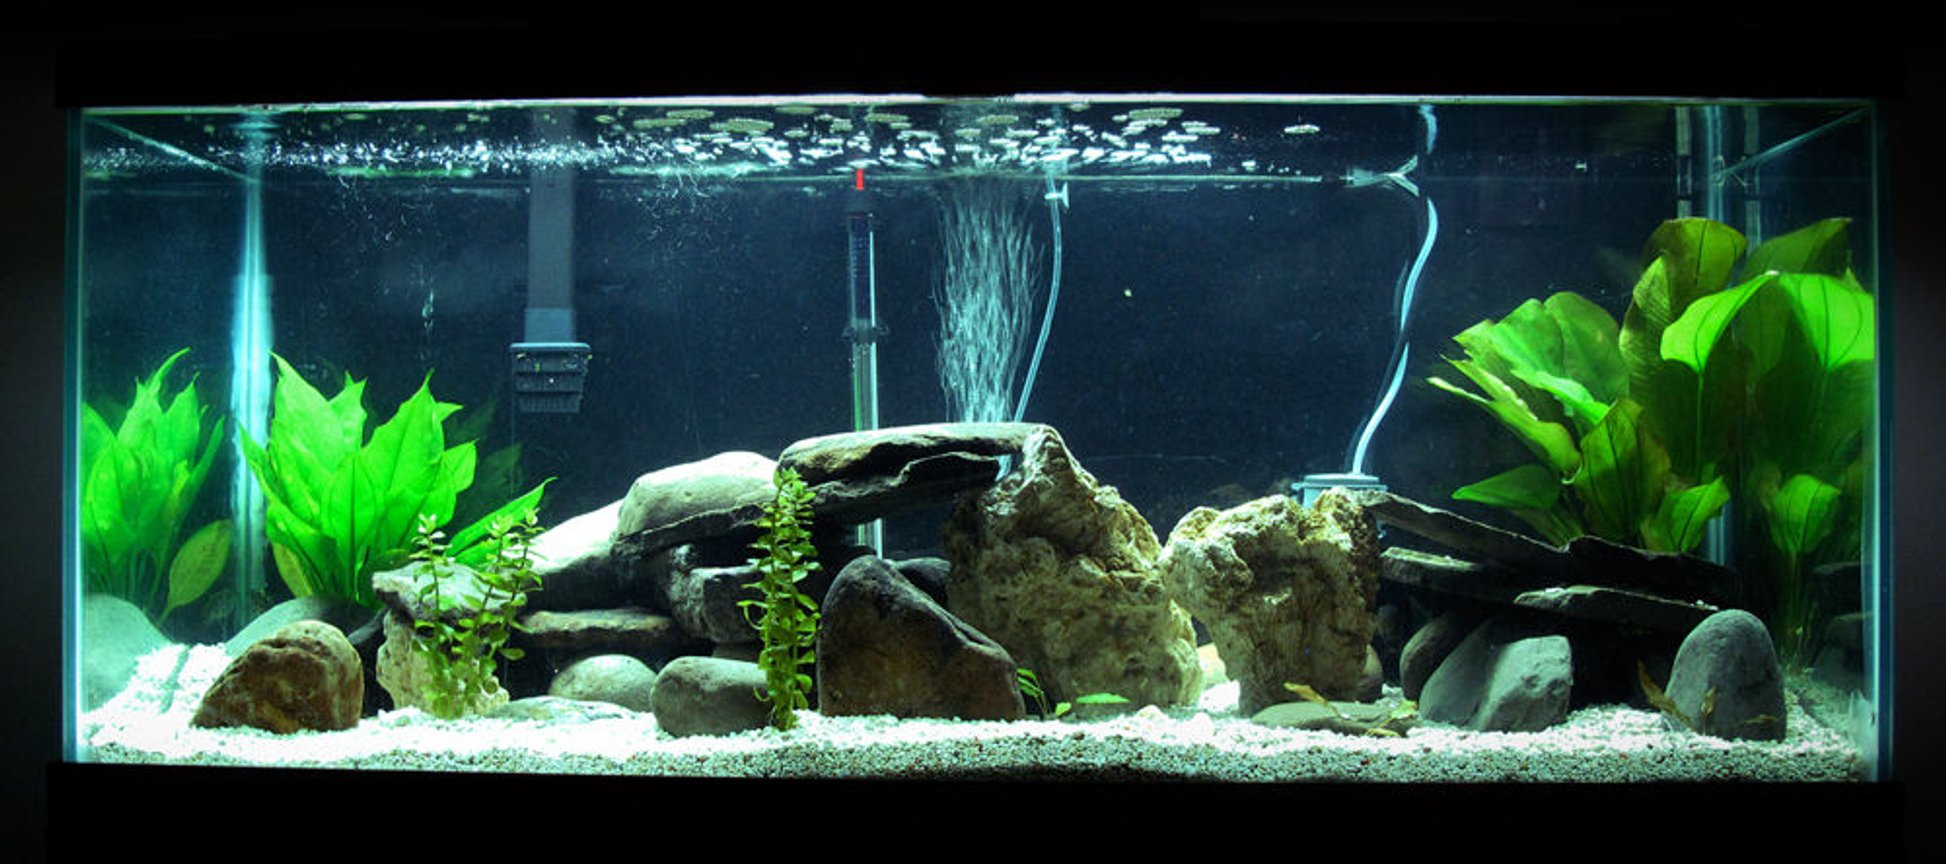 75 gallons freshwater fish tank (mostly fish and non-living decorations) - This is my newest set up. With rocks, plants and hidden are a managuense, dovii, jack dempsey, figure eight puffer, green spotted puffer, pleco and a cat.